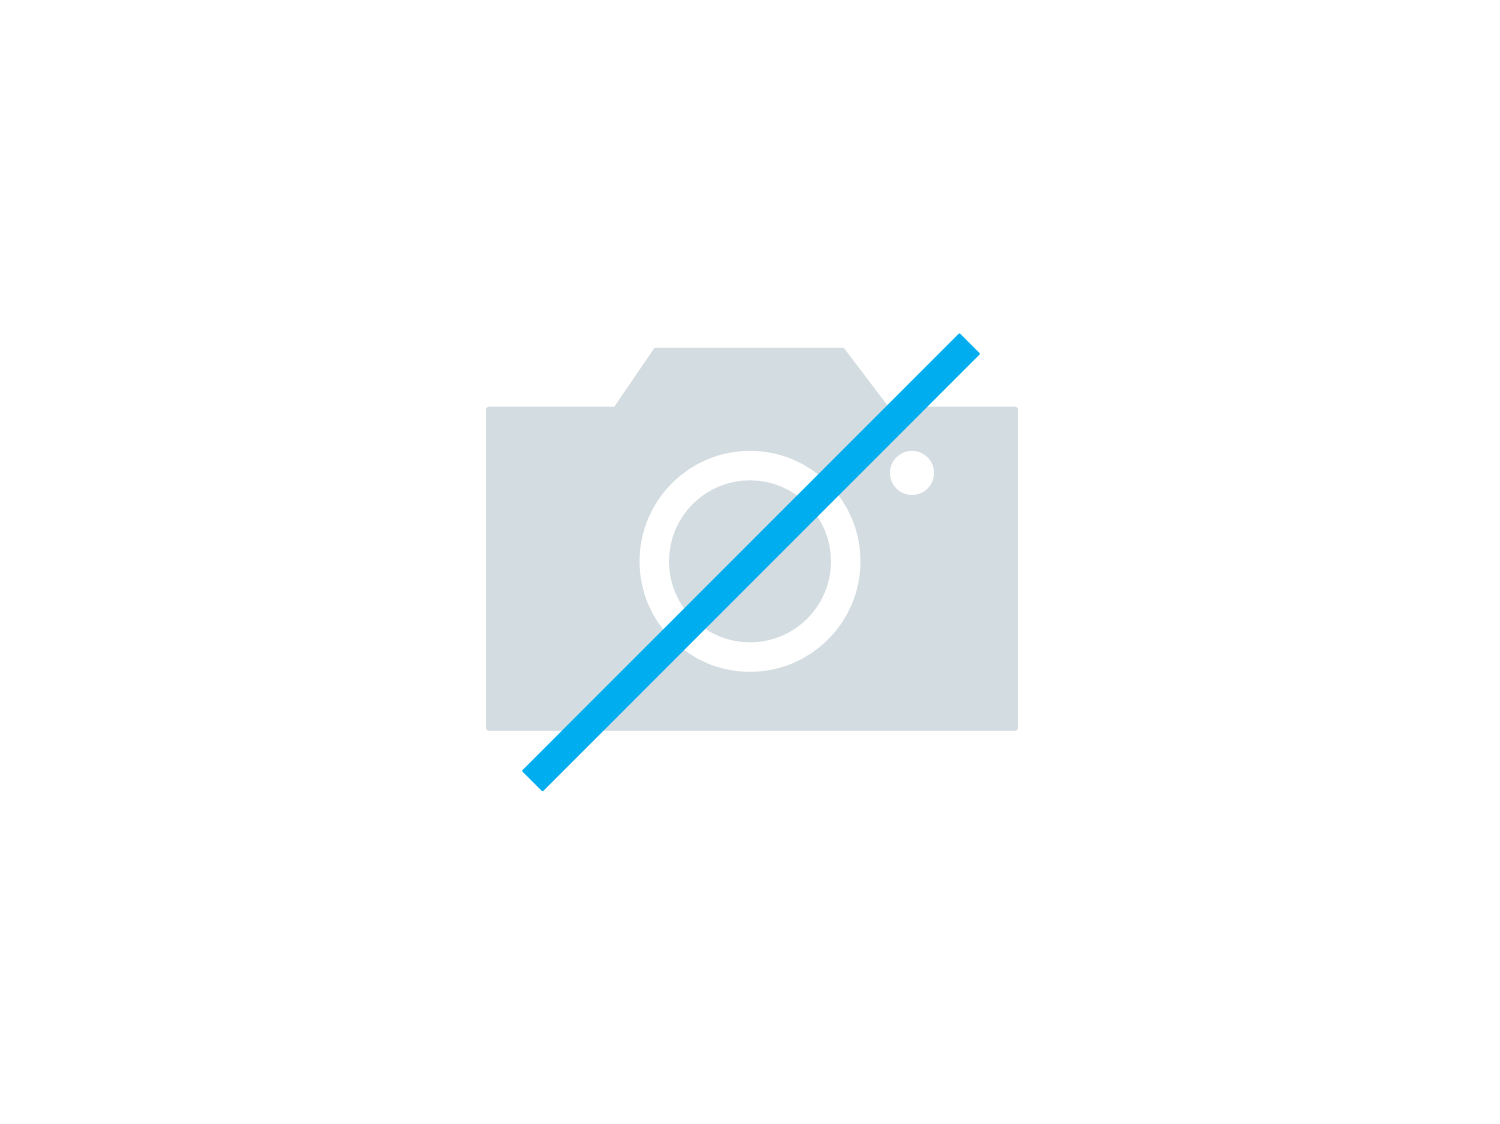 Matras Km12b pocketveren 60x120cm-224195-medium